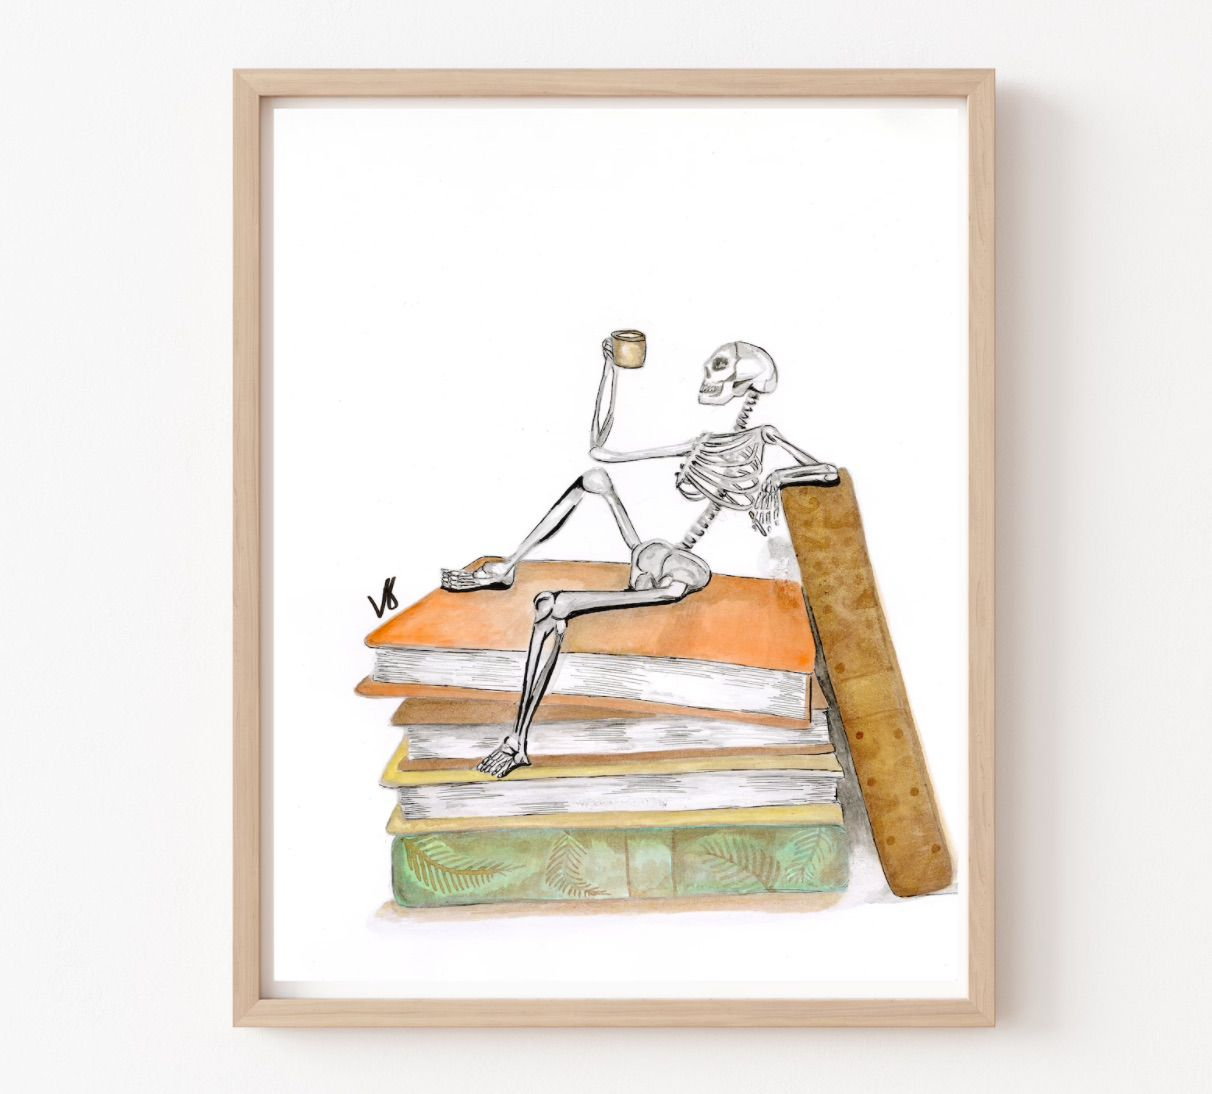 Image of a print featuring a skeleton with a cup of coffee on top of a stack of old books.